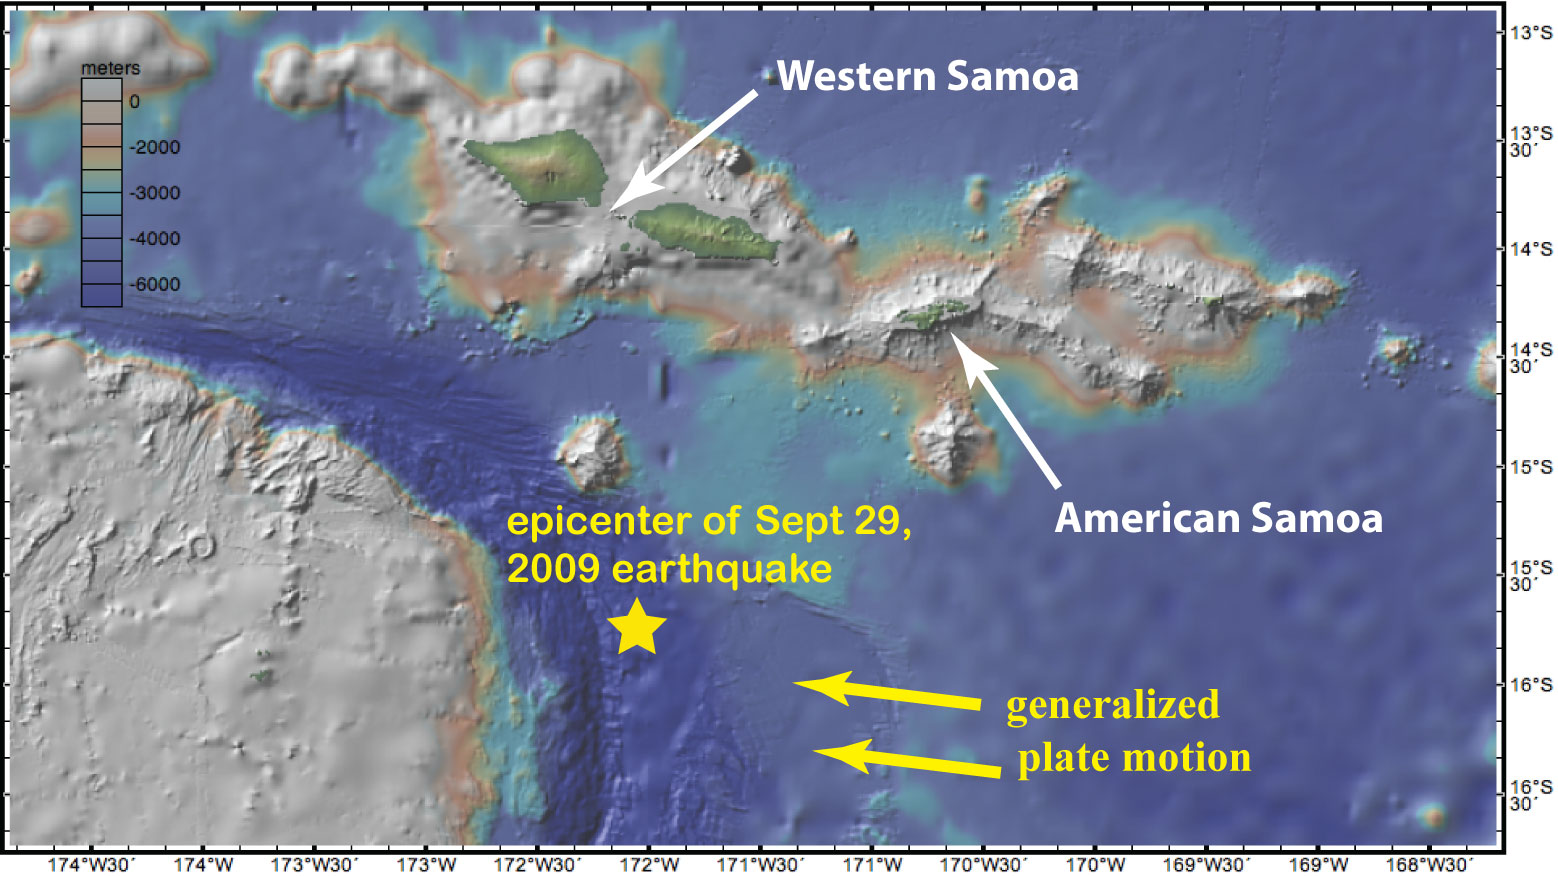 map of Samoa region (made in GeoMapApp) showing epicenter of Sept 29, 2009 8.0 earthquake